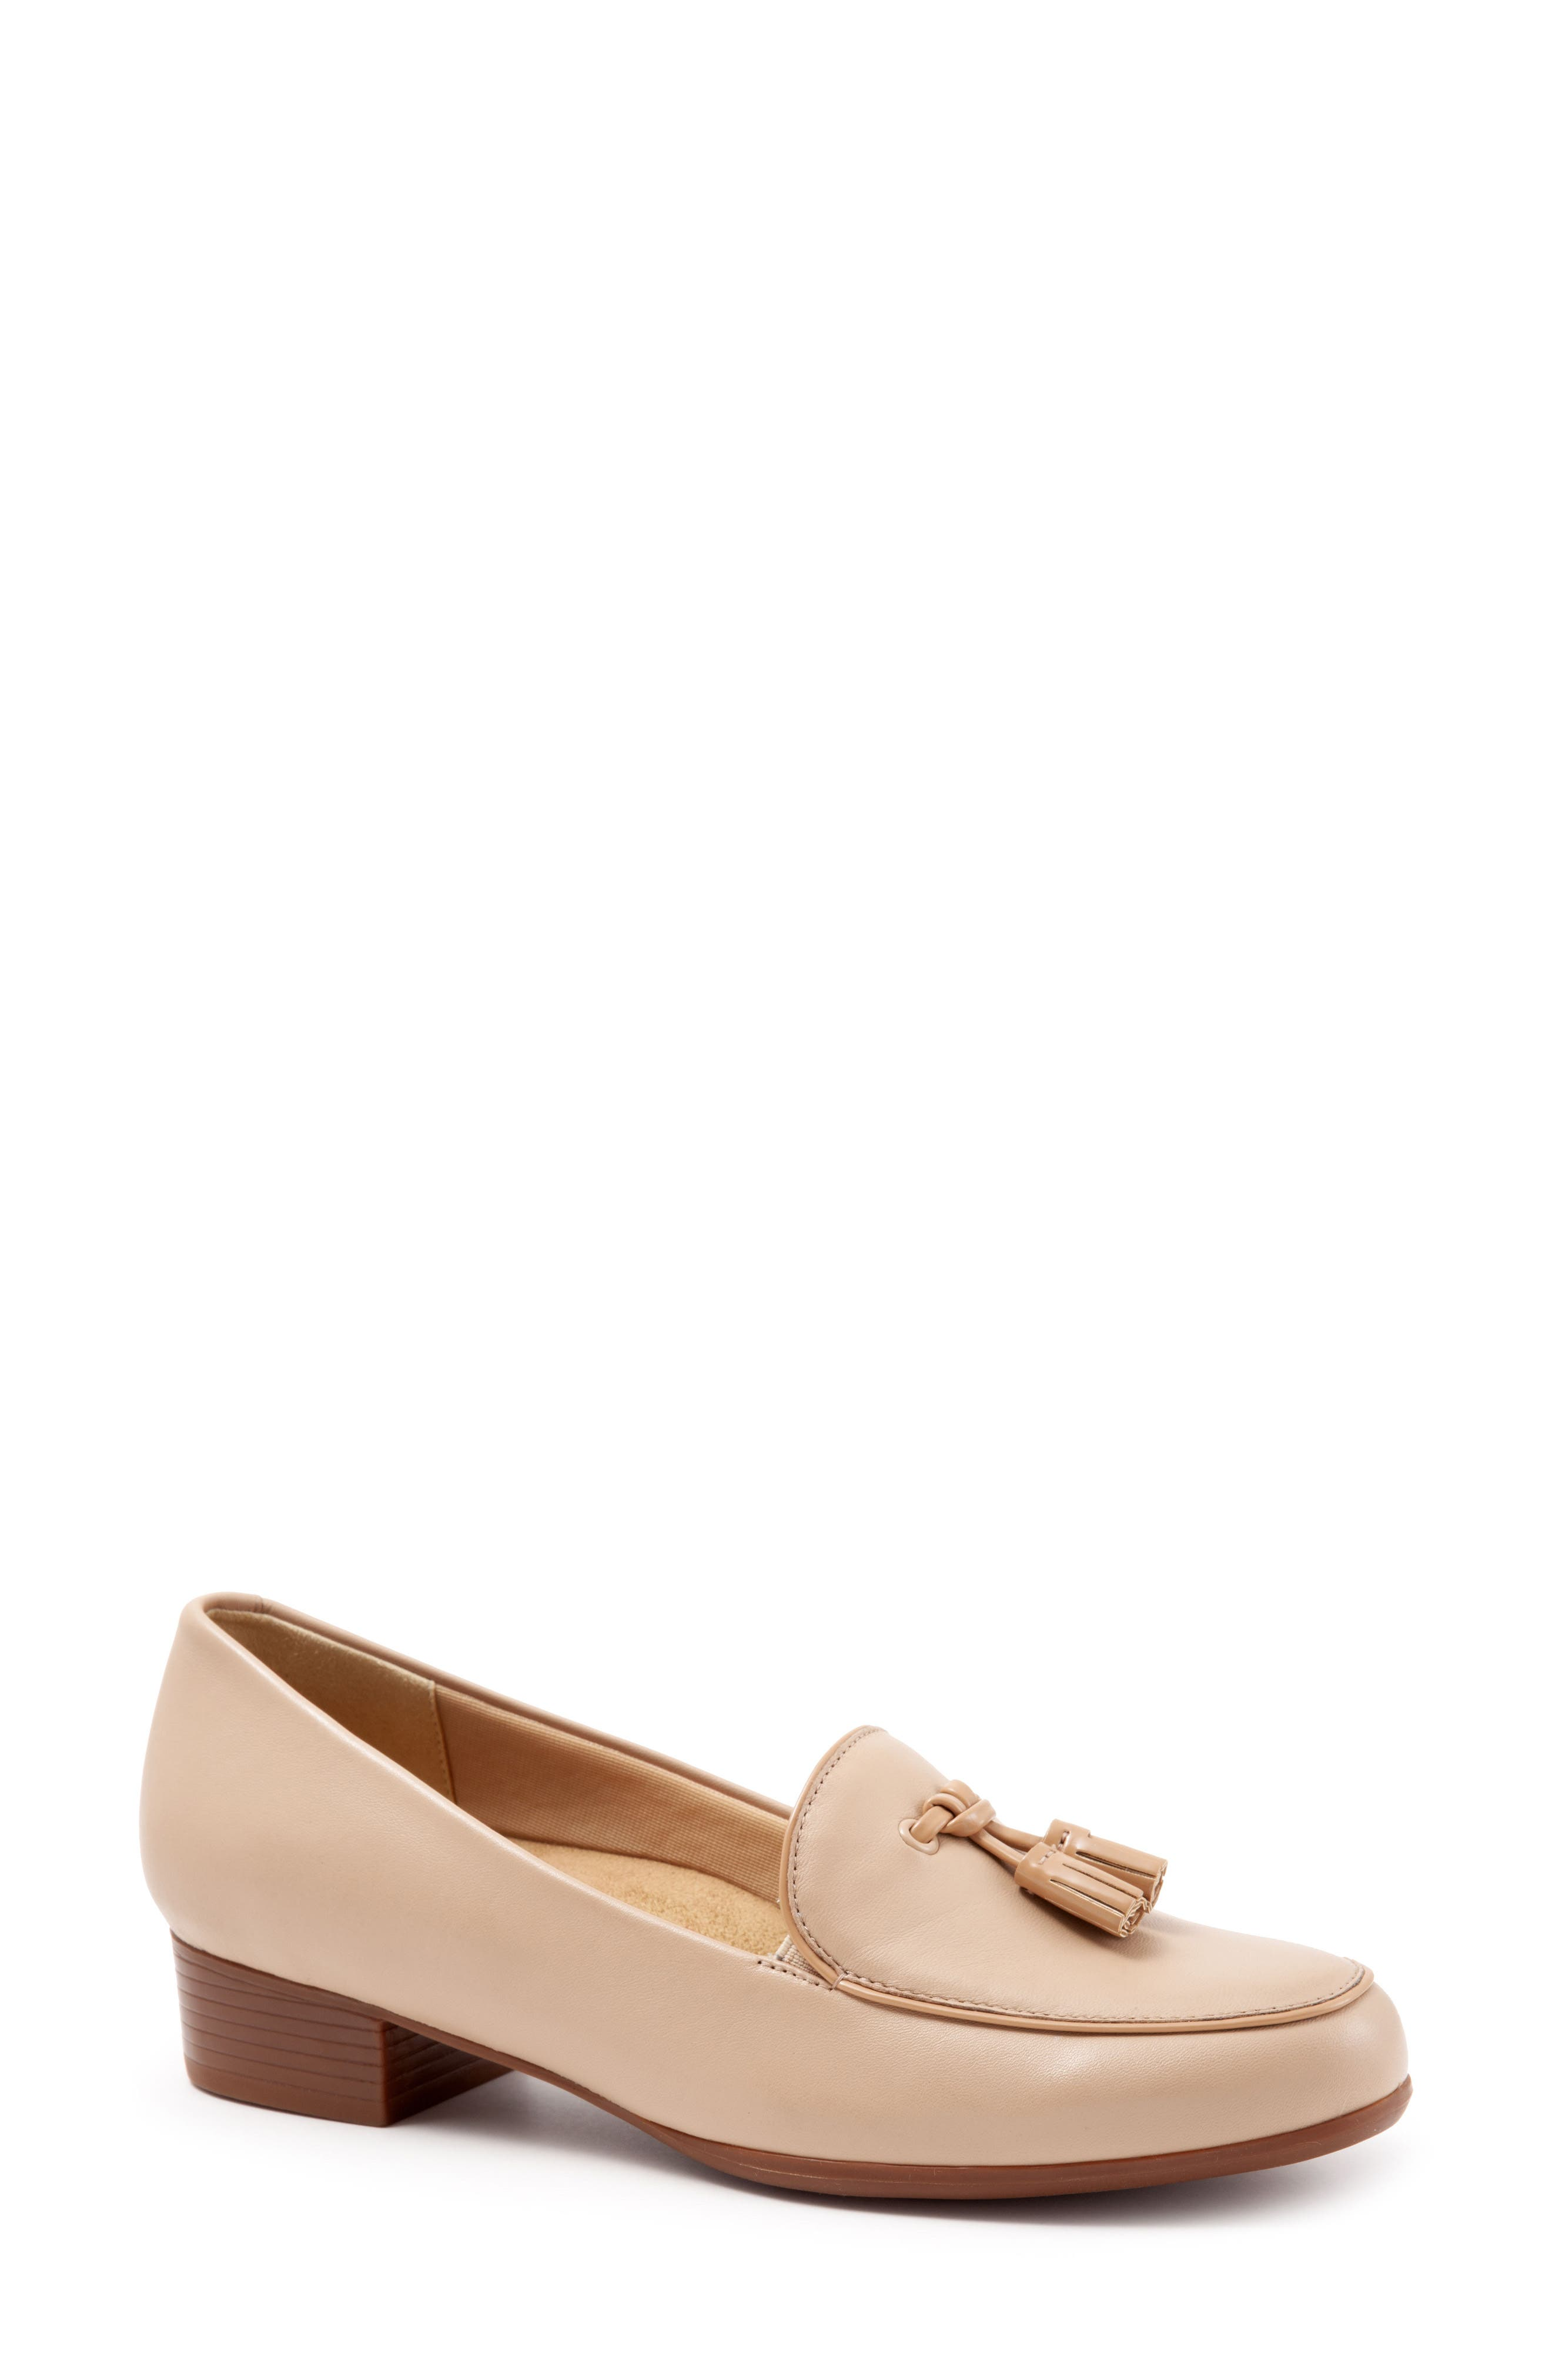 TROTTERS, Mary Tassel Loafer, Main thumbnail 1, color, NUDE LEATHER